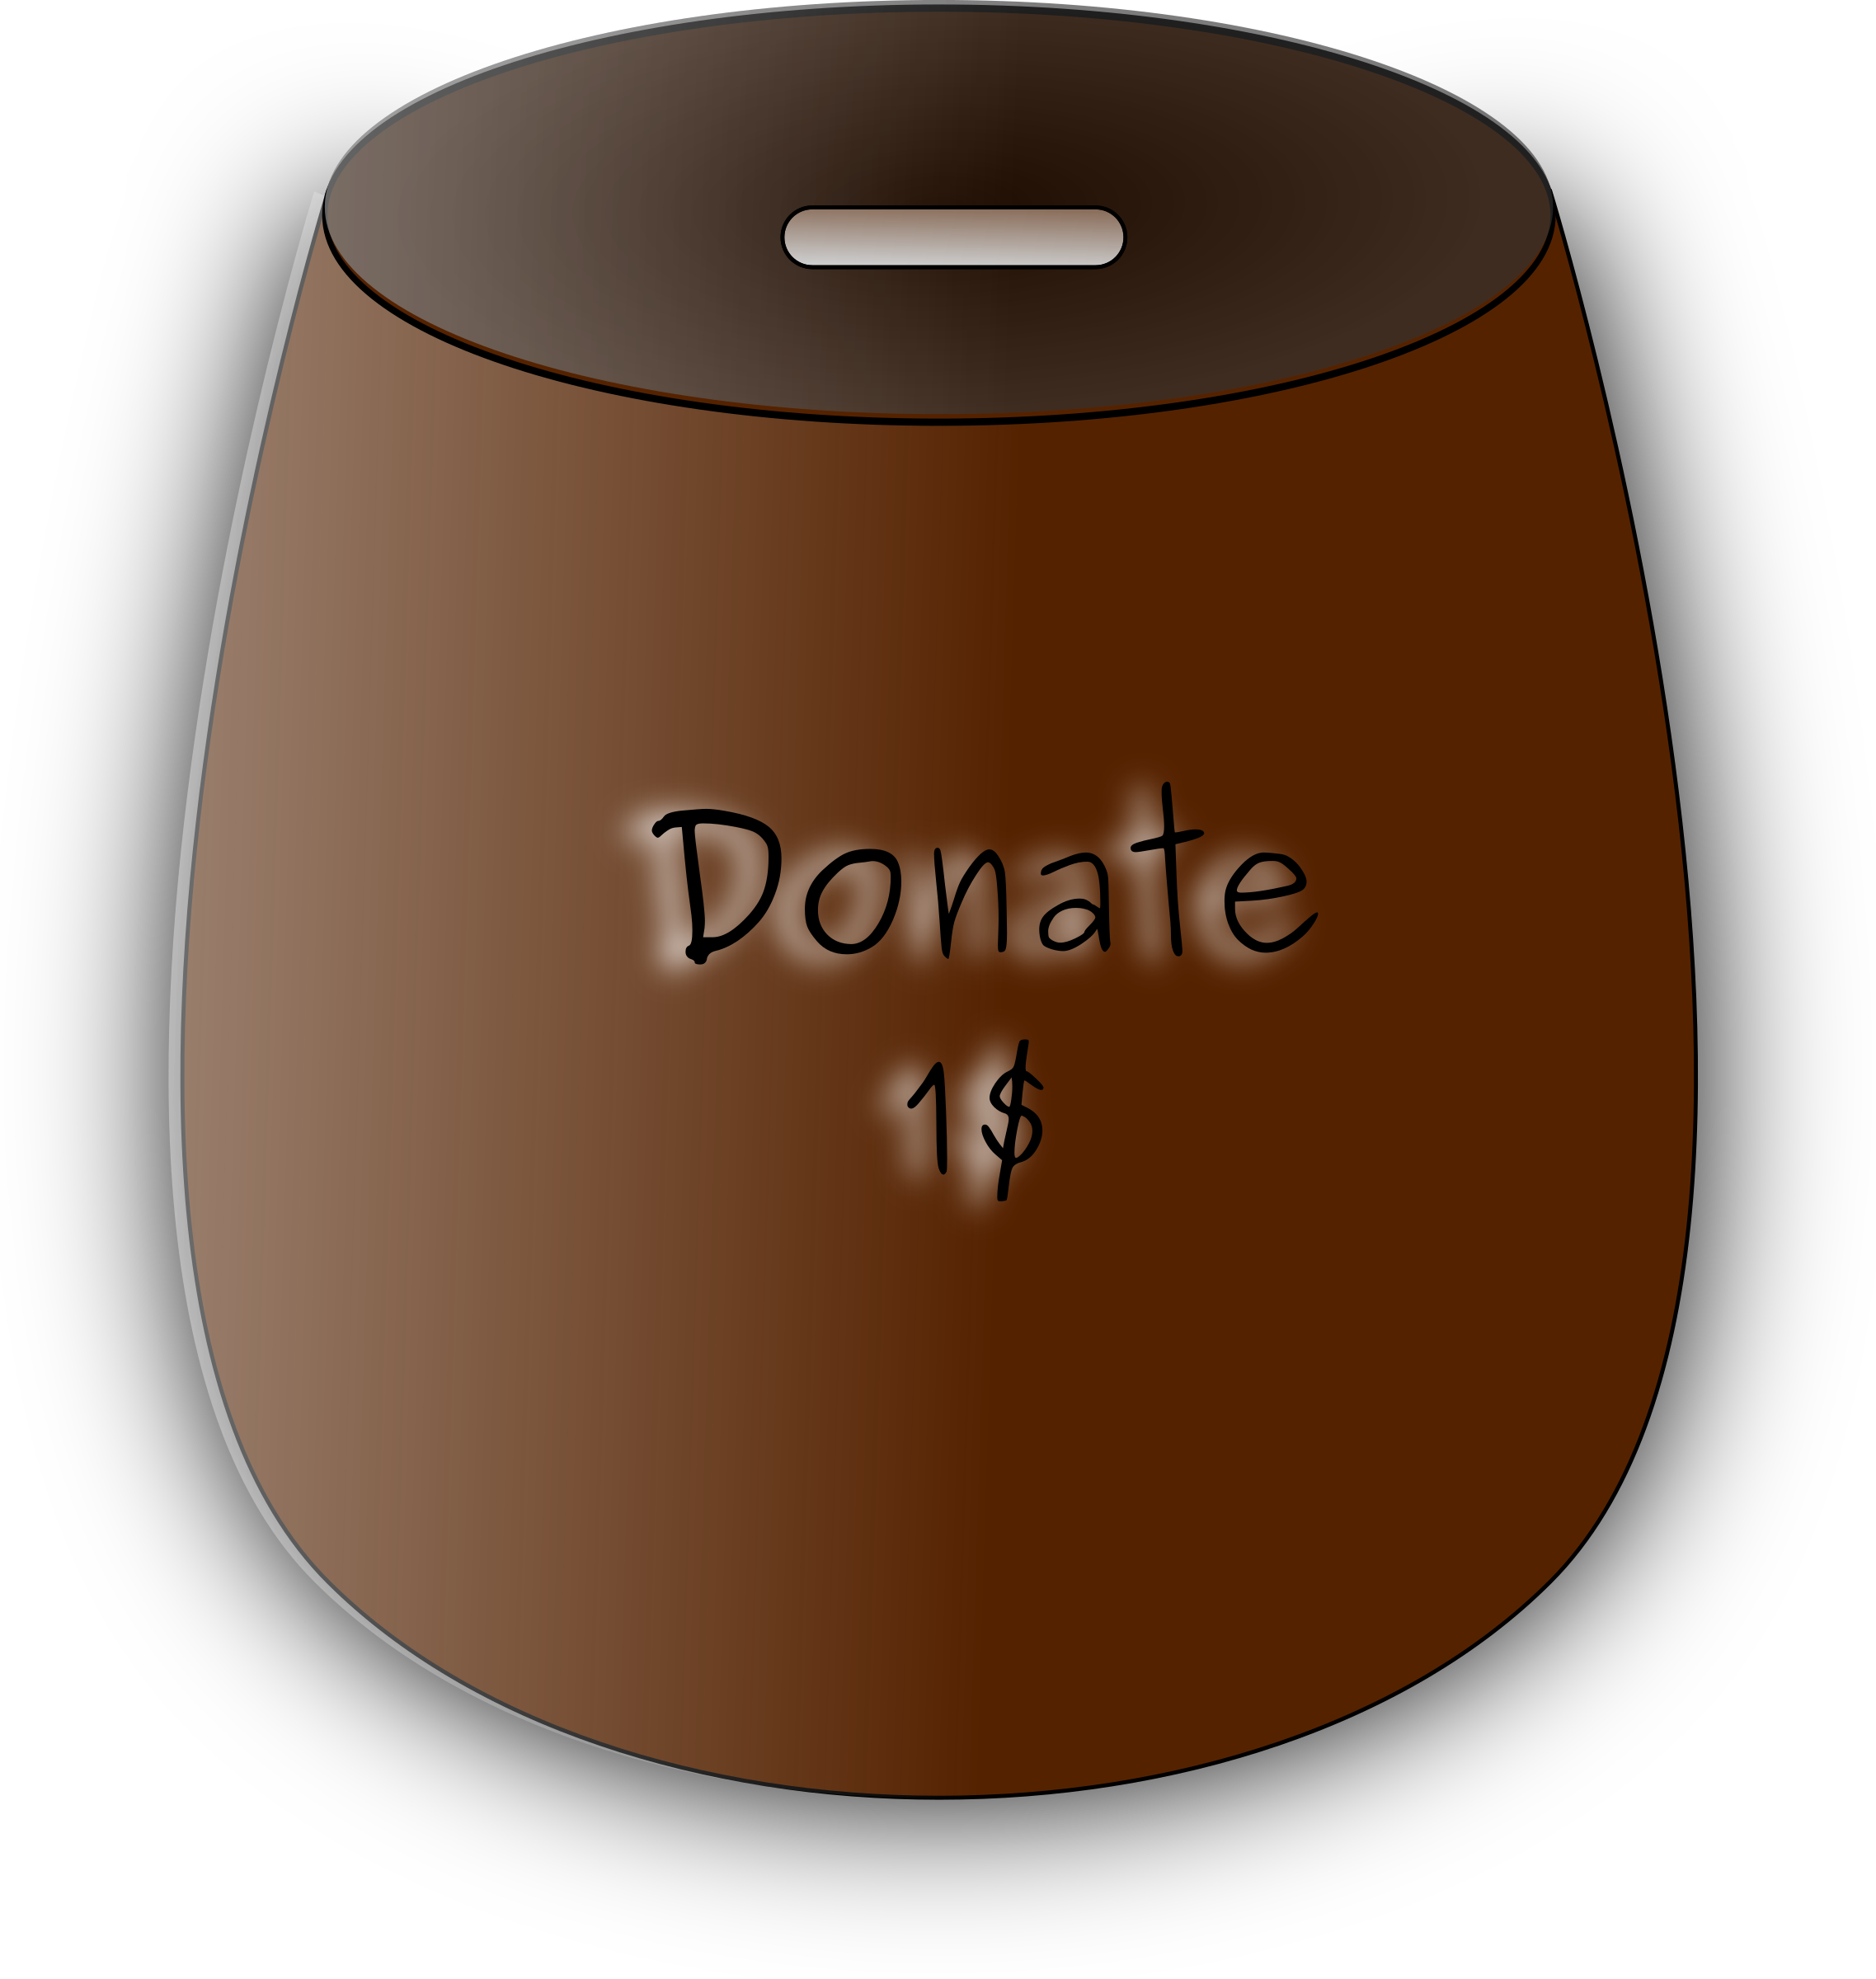 Box big image png. Donation clipart money collection